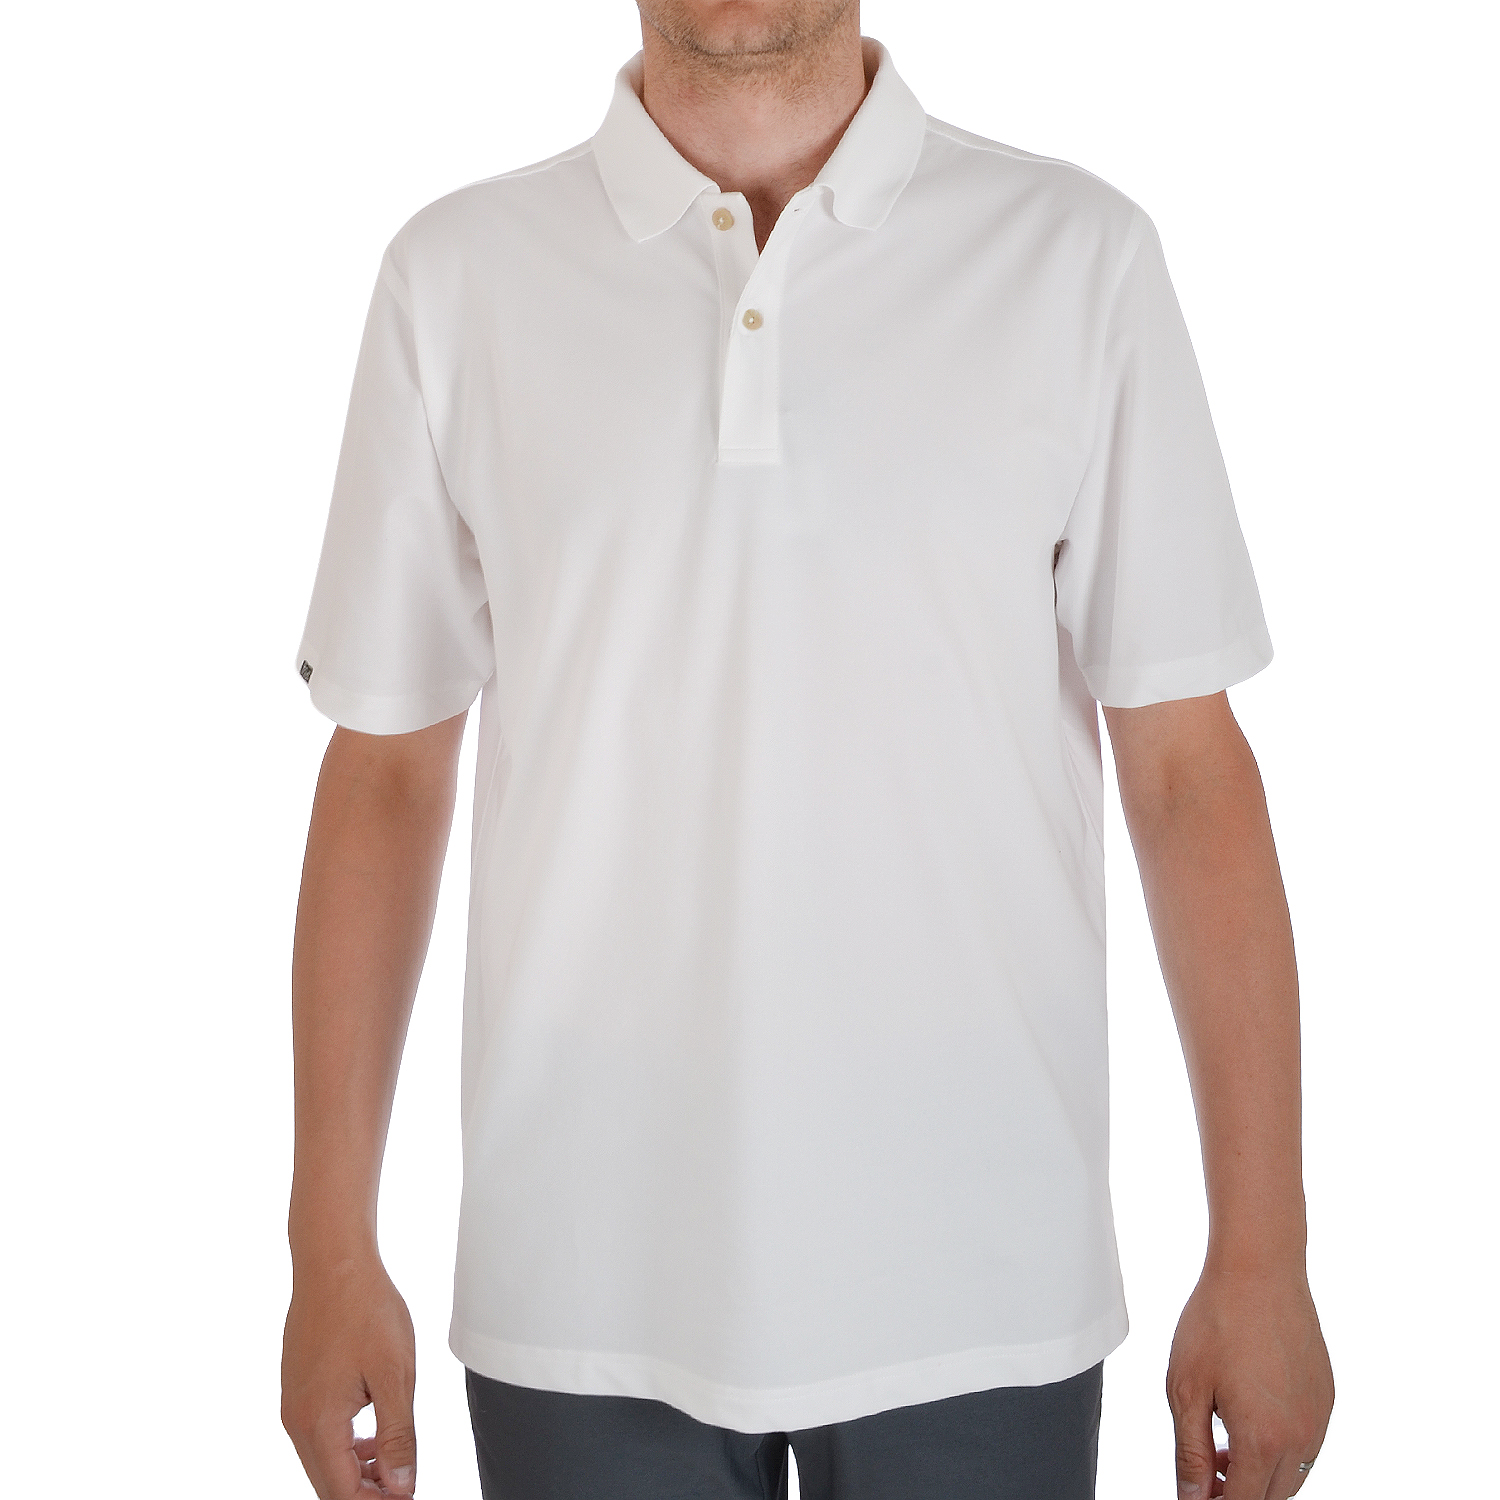 Ashworth-Performance-Mens-Short-Sleeve-Cotton-Golf-Polo-Shirt-Top-White-Red